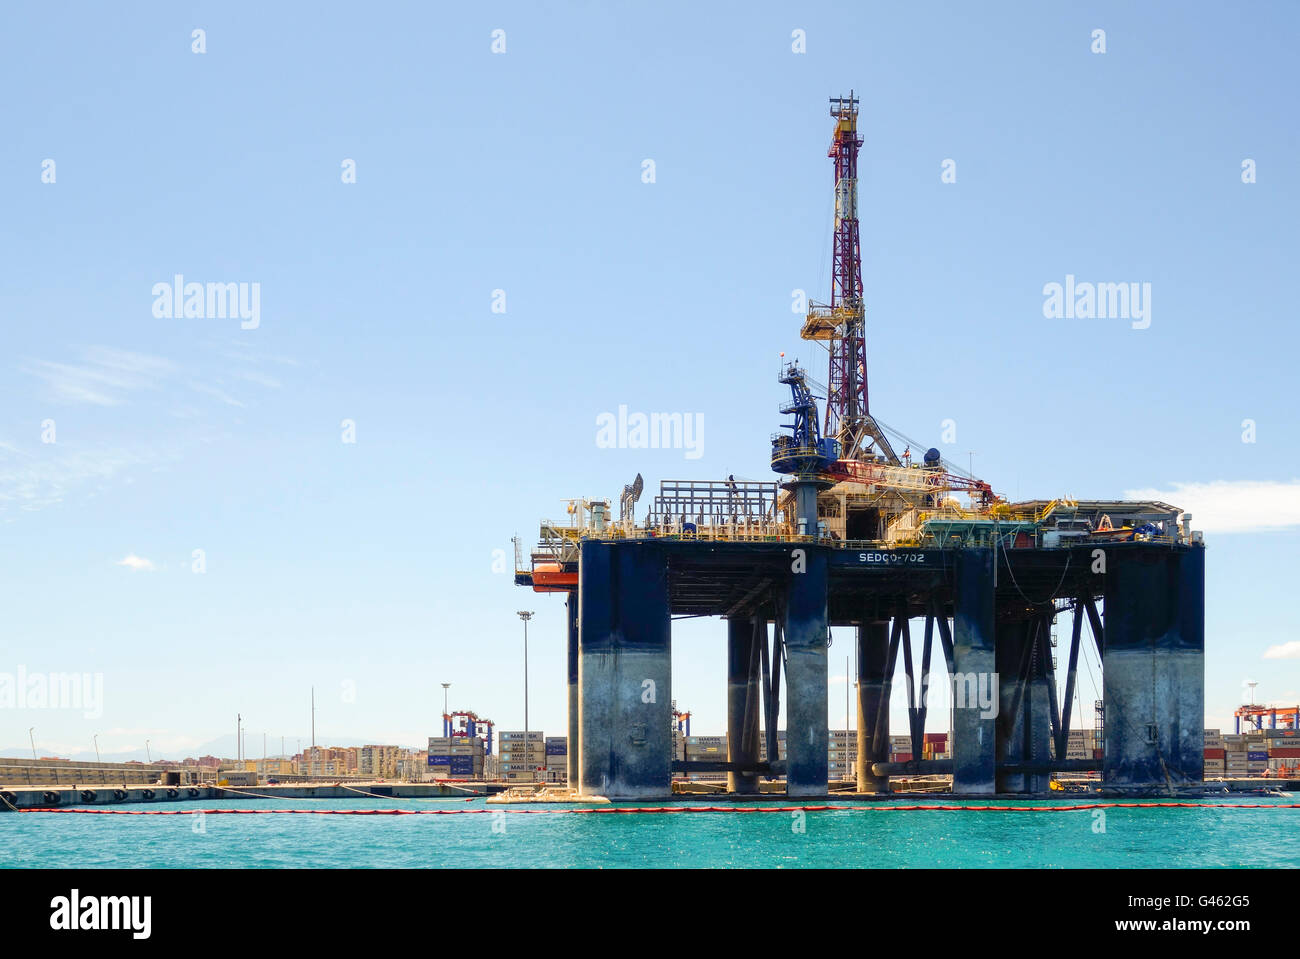 Oil rig Sedco 702, from Liberia moored in Port of Malaga, docked, to be dismantled, Andalusia, Spain. Stock Photo